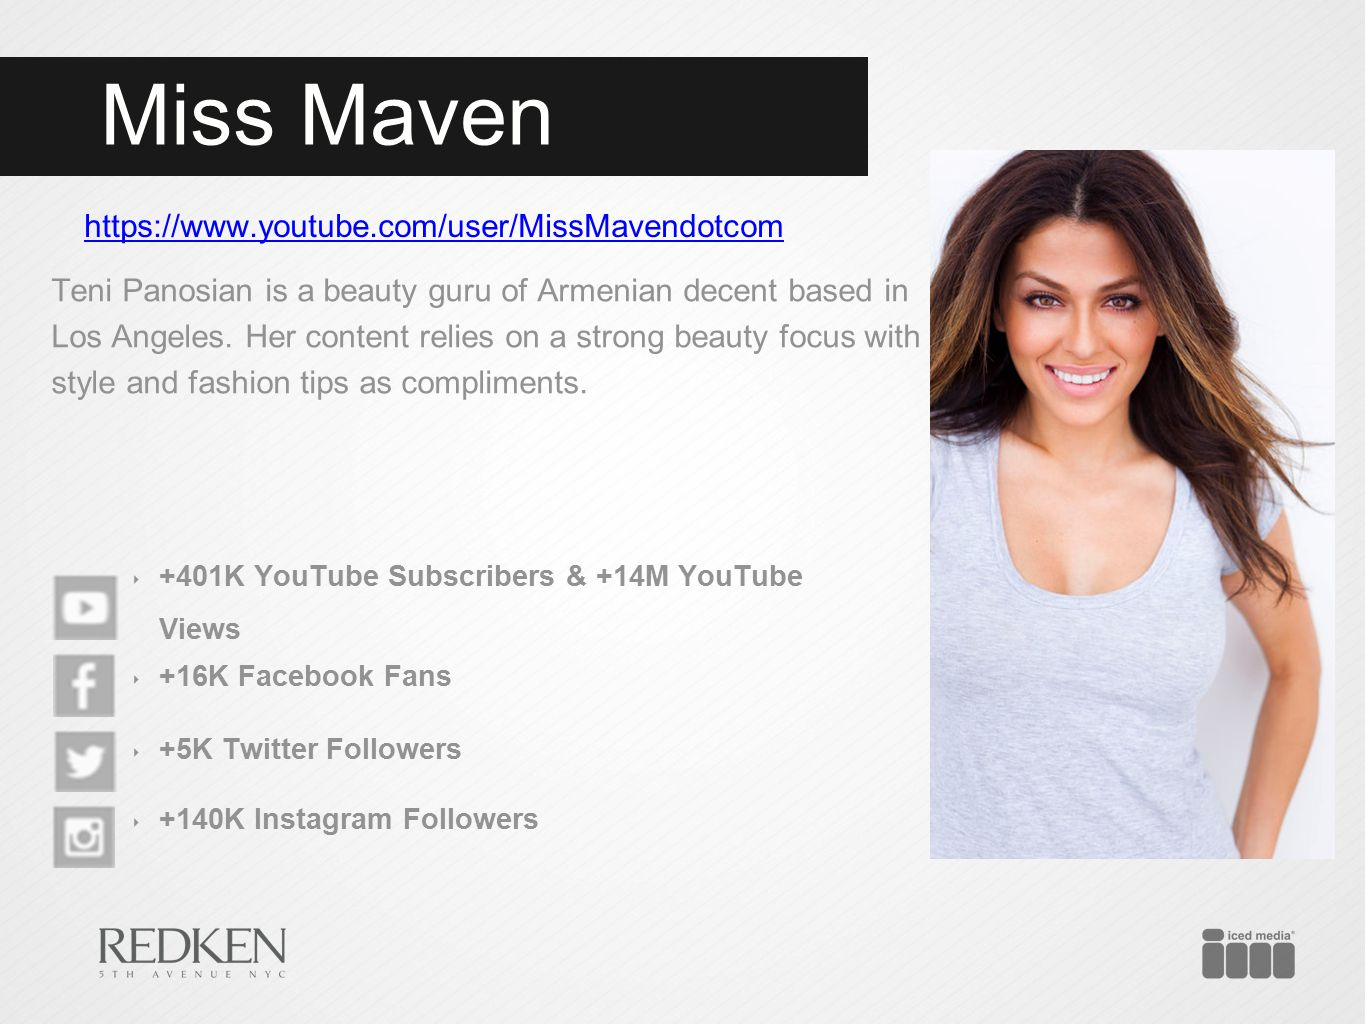 Miss Maven https://www.youtube.com/user/MissMavendotcom Teni Panosian is a beauty guru of Armenian decent based in Los Angeles. Her content relies on